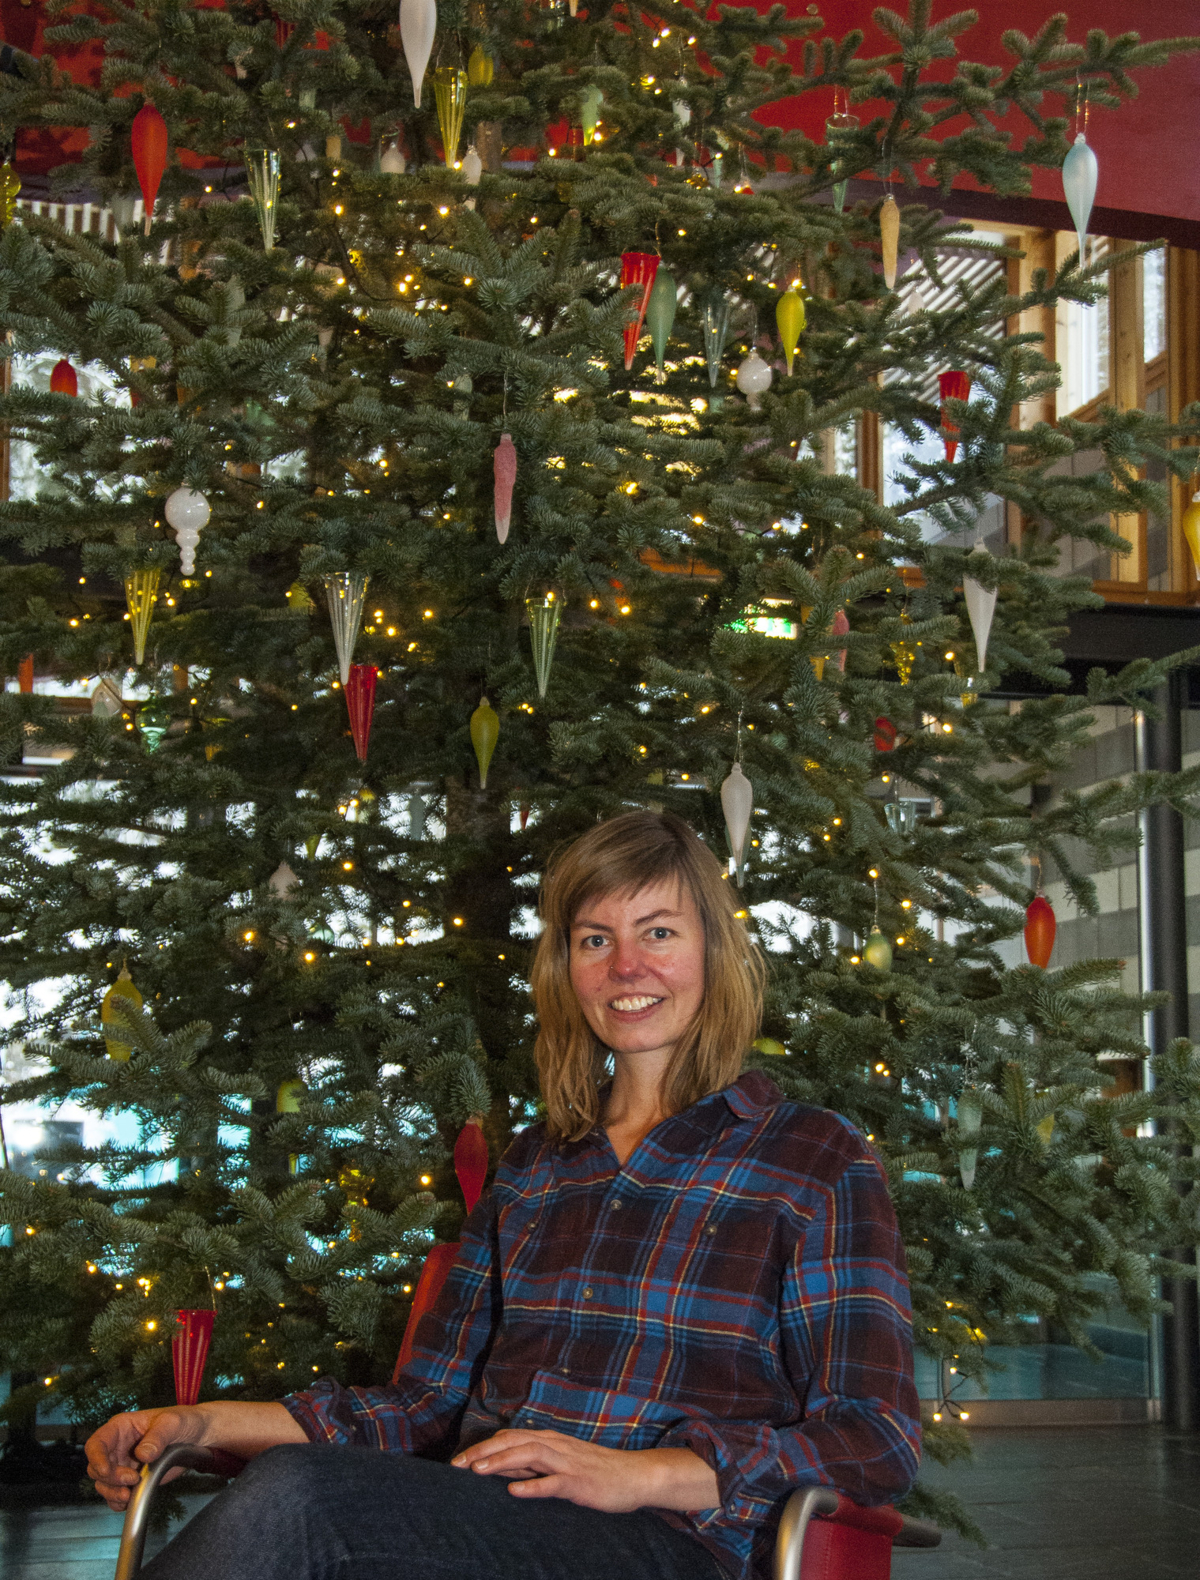 Kari Mølstad in front of a Christmas tree with glass ornaments in different colors.